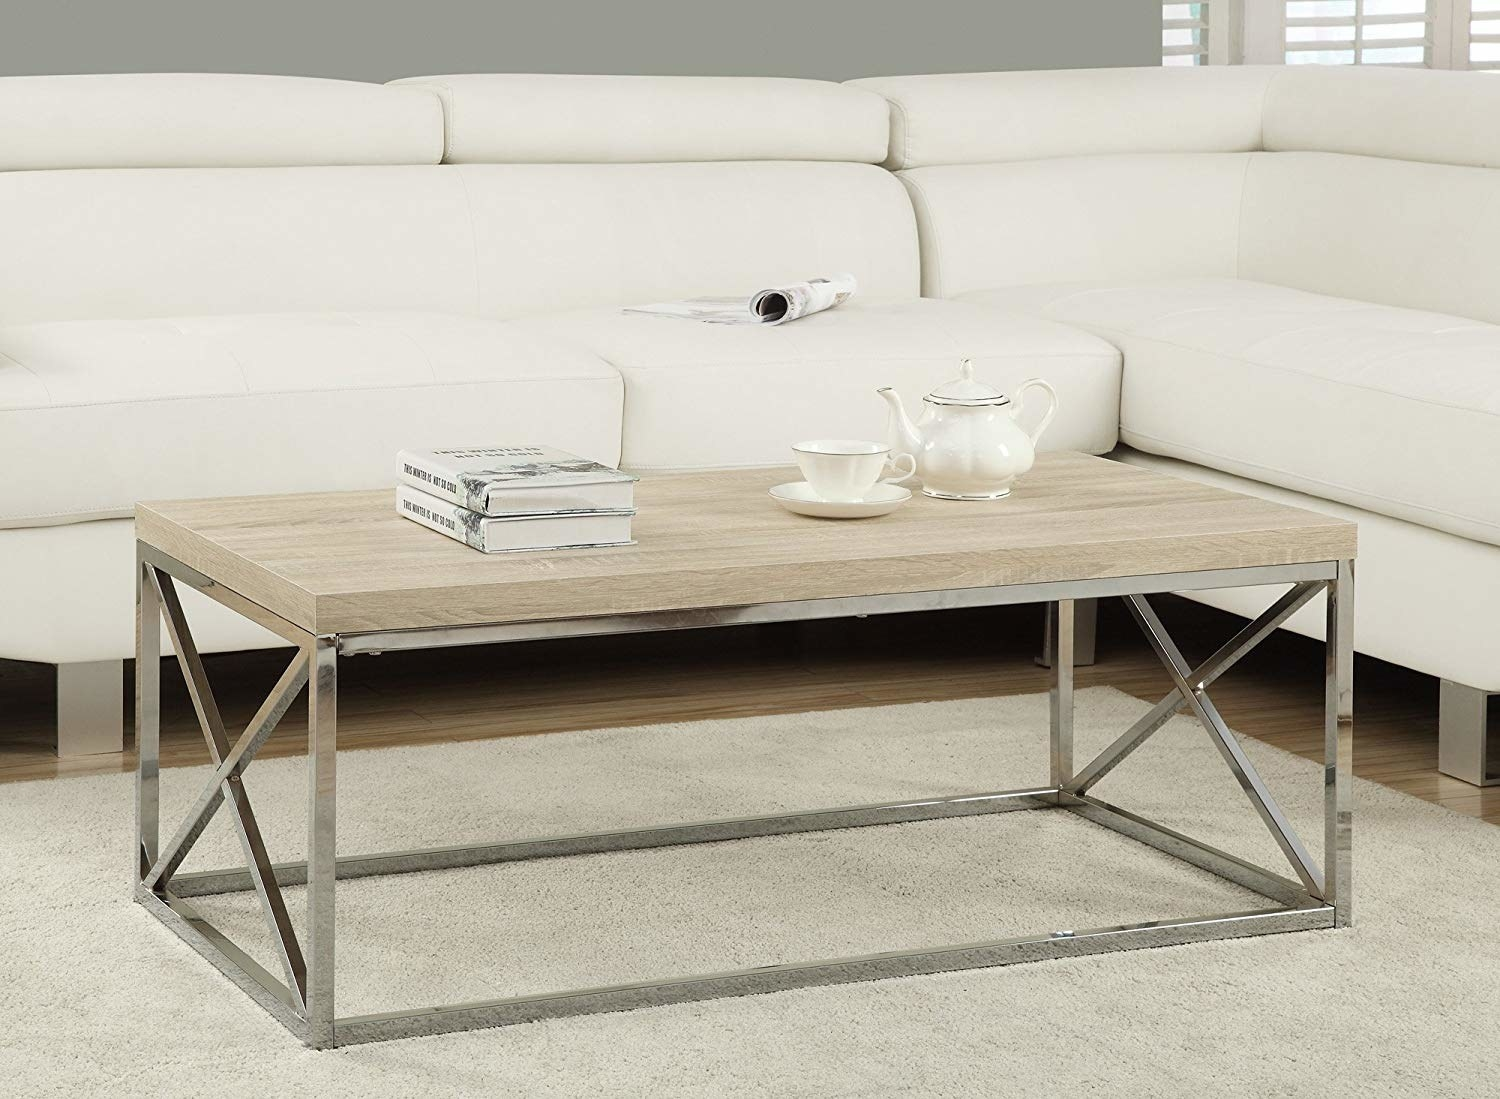 The coffee table with a light brown wood top and silver legs